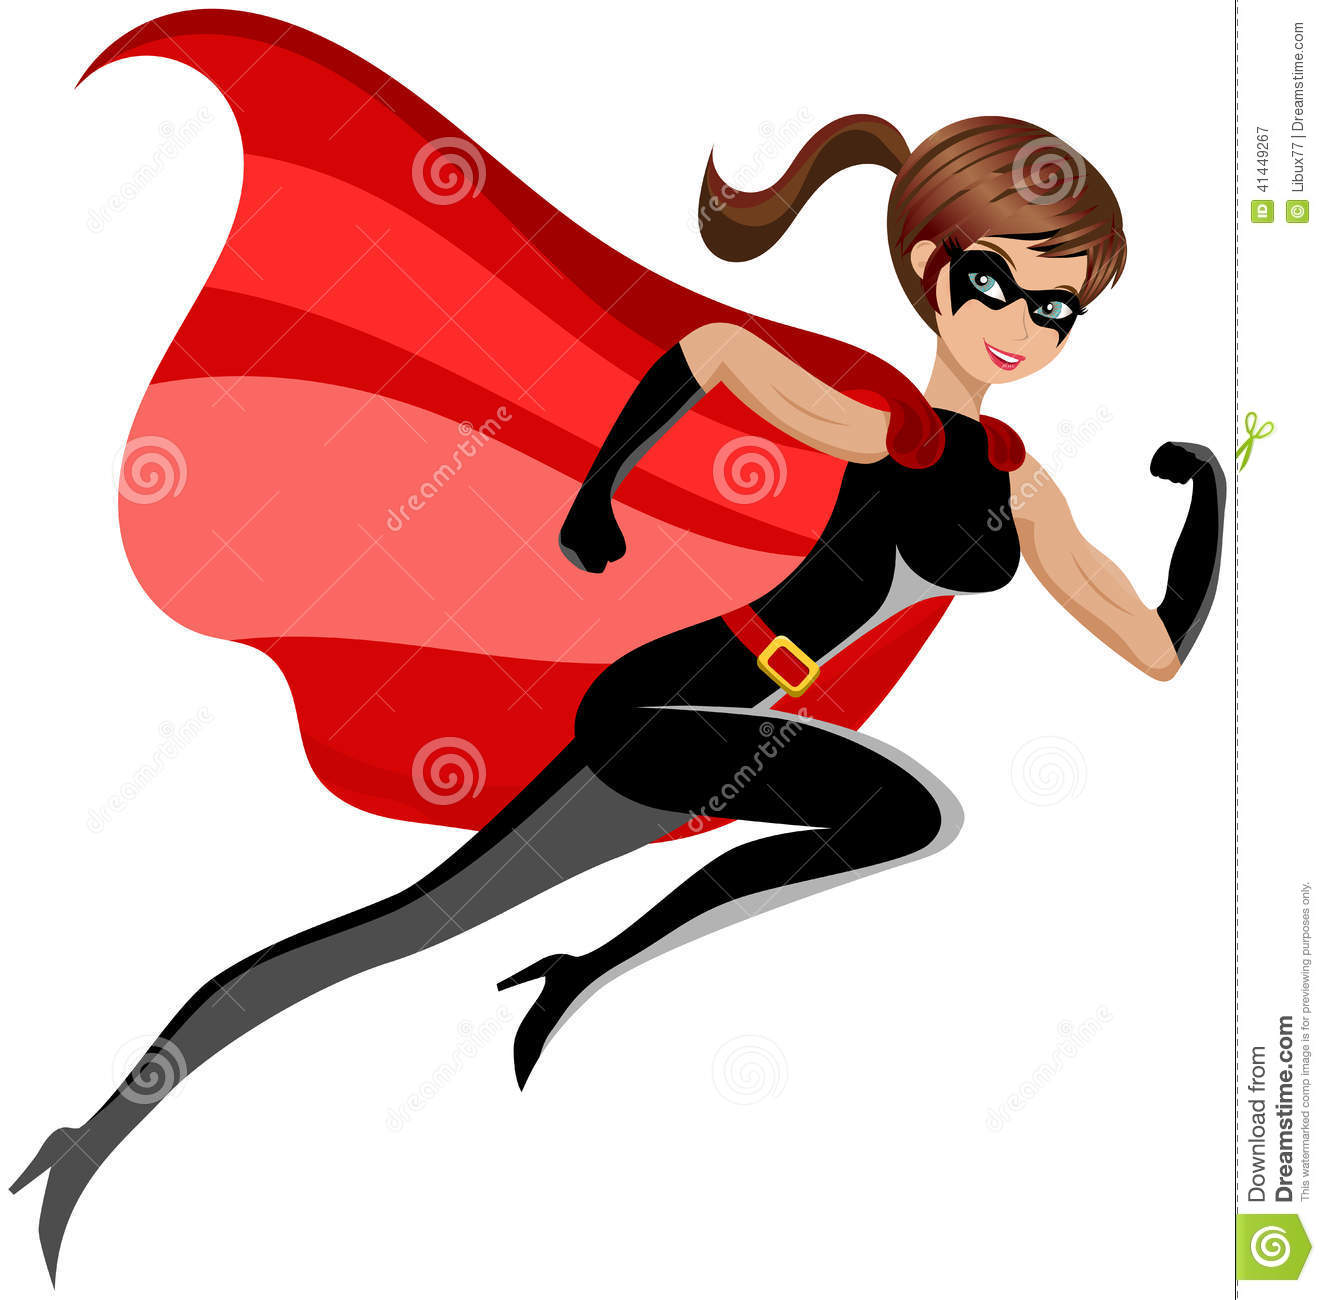 Woman Superhero Clipart.